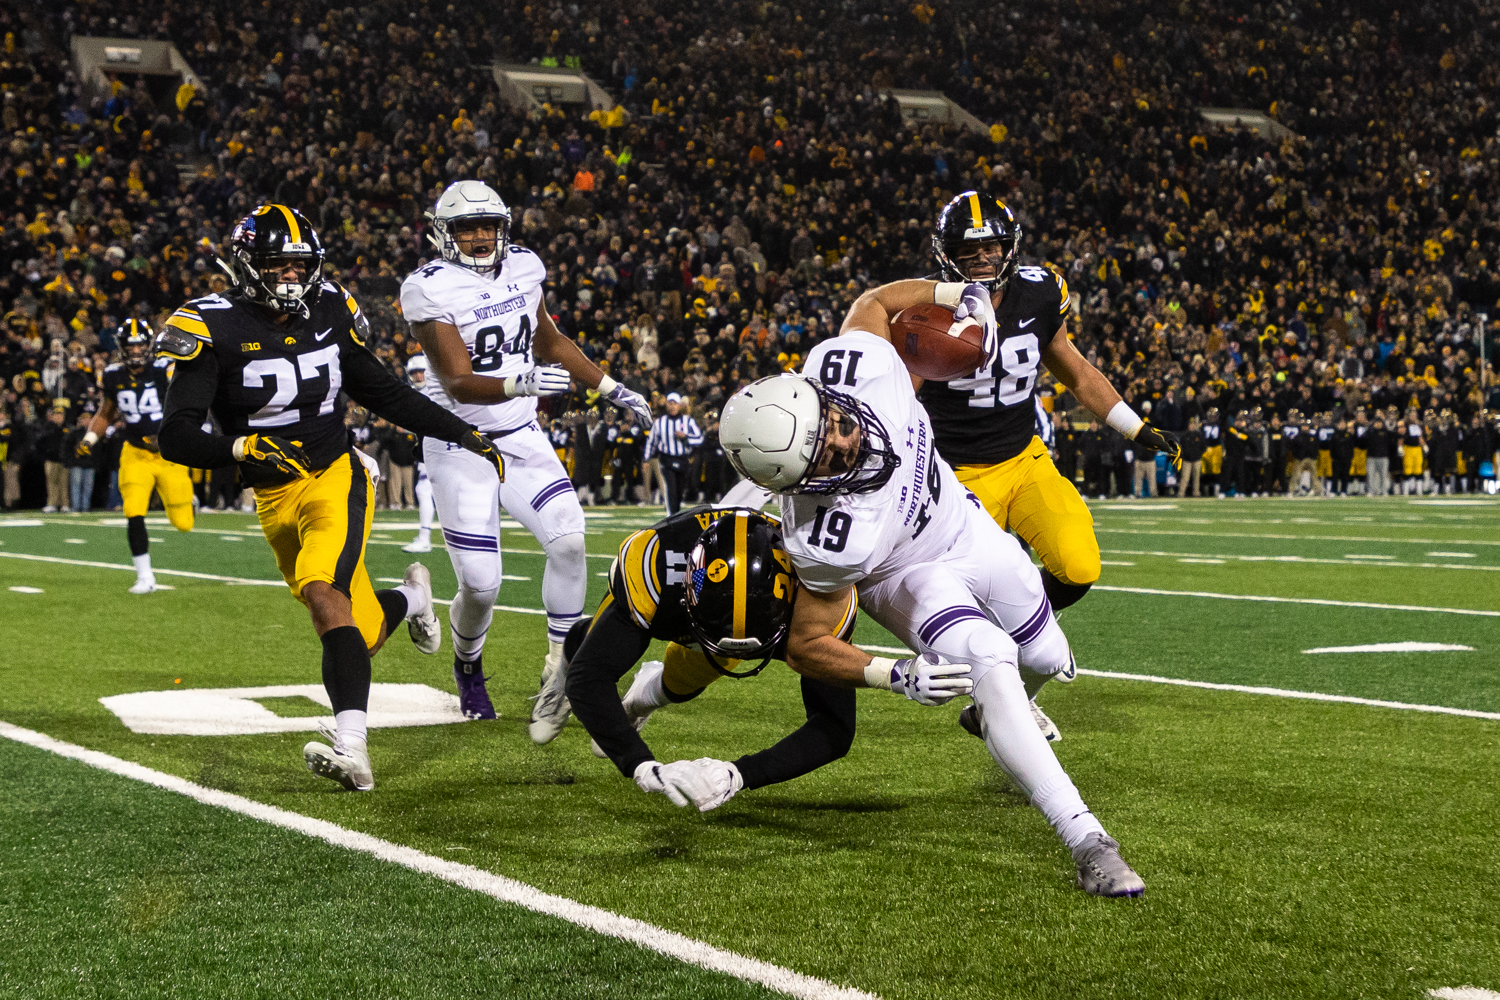 Iowa+defensive+back+Michael+Ojemudia+%2311+tackles+Northwestern+wide+receiver+Riley+Lees+%2319+along+the+sidelines+during+a+game+against+Northwestern+University+on+Saturday%2C+Nov.+10%2C+2018+at+Kinnick+Stadium+in+Iowa+City.+The+Wildcats+defeated+the+Hawkeyes+14-10.+%28David+Harmantas%2FThe+Daily+Iowan%29